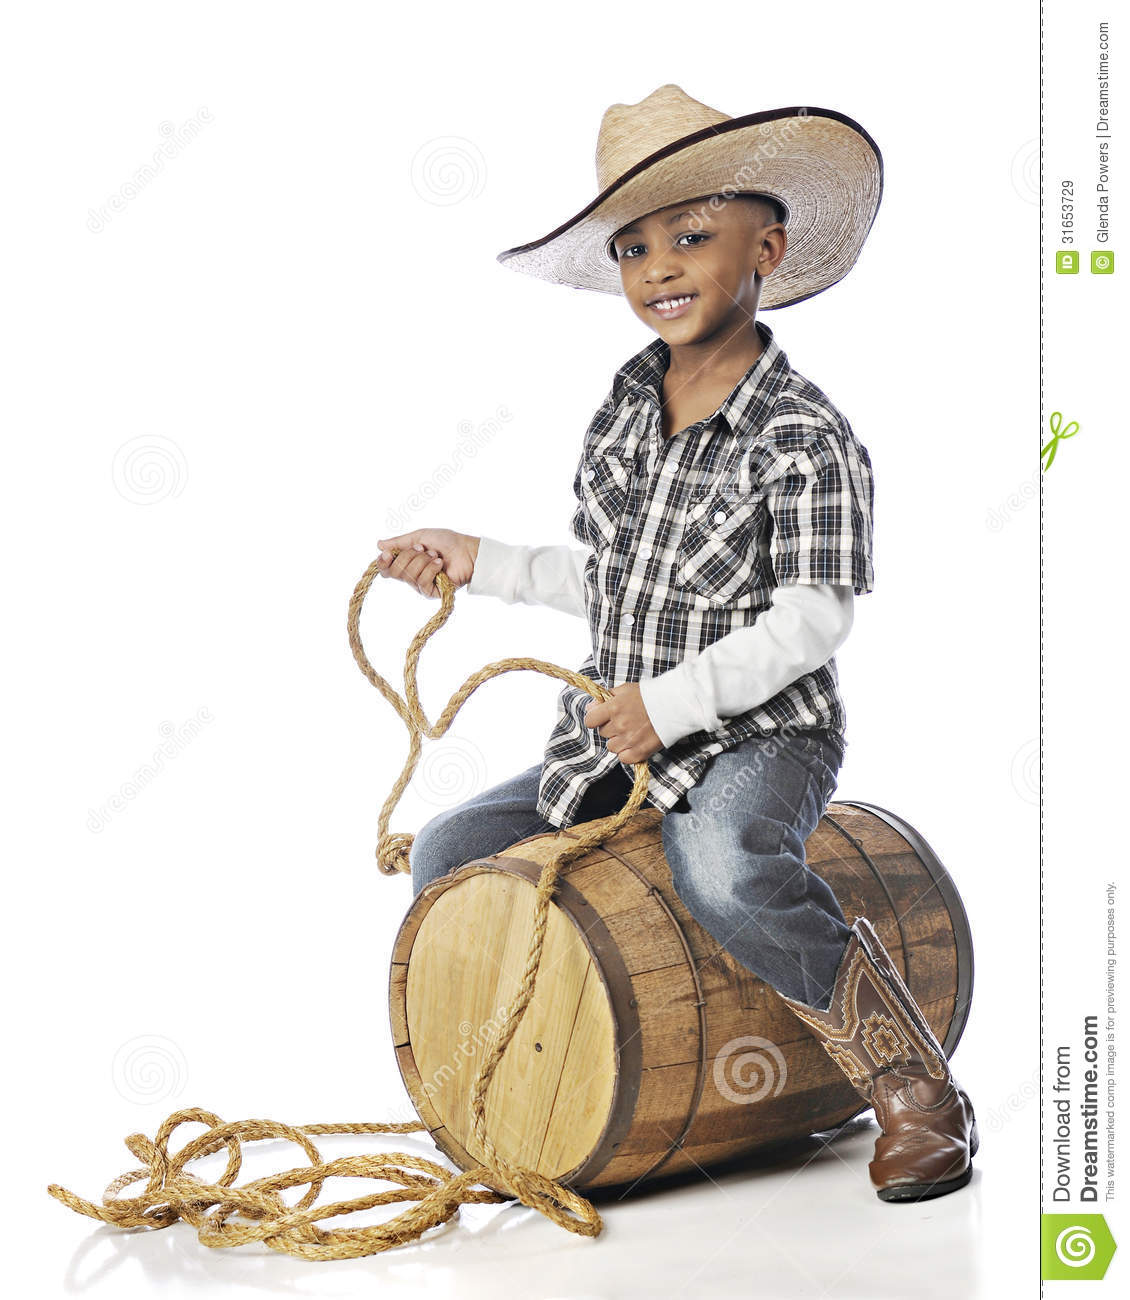 handsome elementary cowboy happily holding a rope while riding an ...: dreamstime.com/royalty-free-stock-images-barrel-rider-handsome...